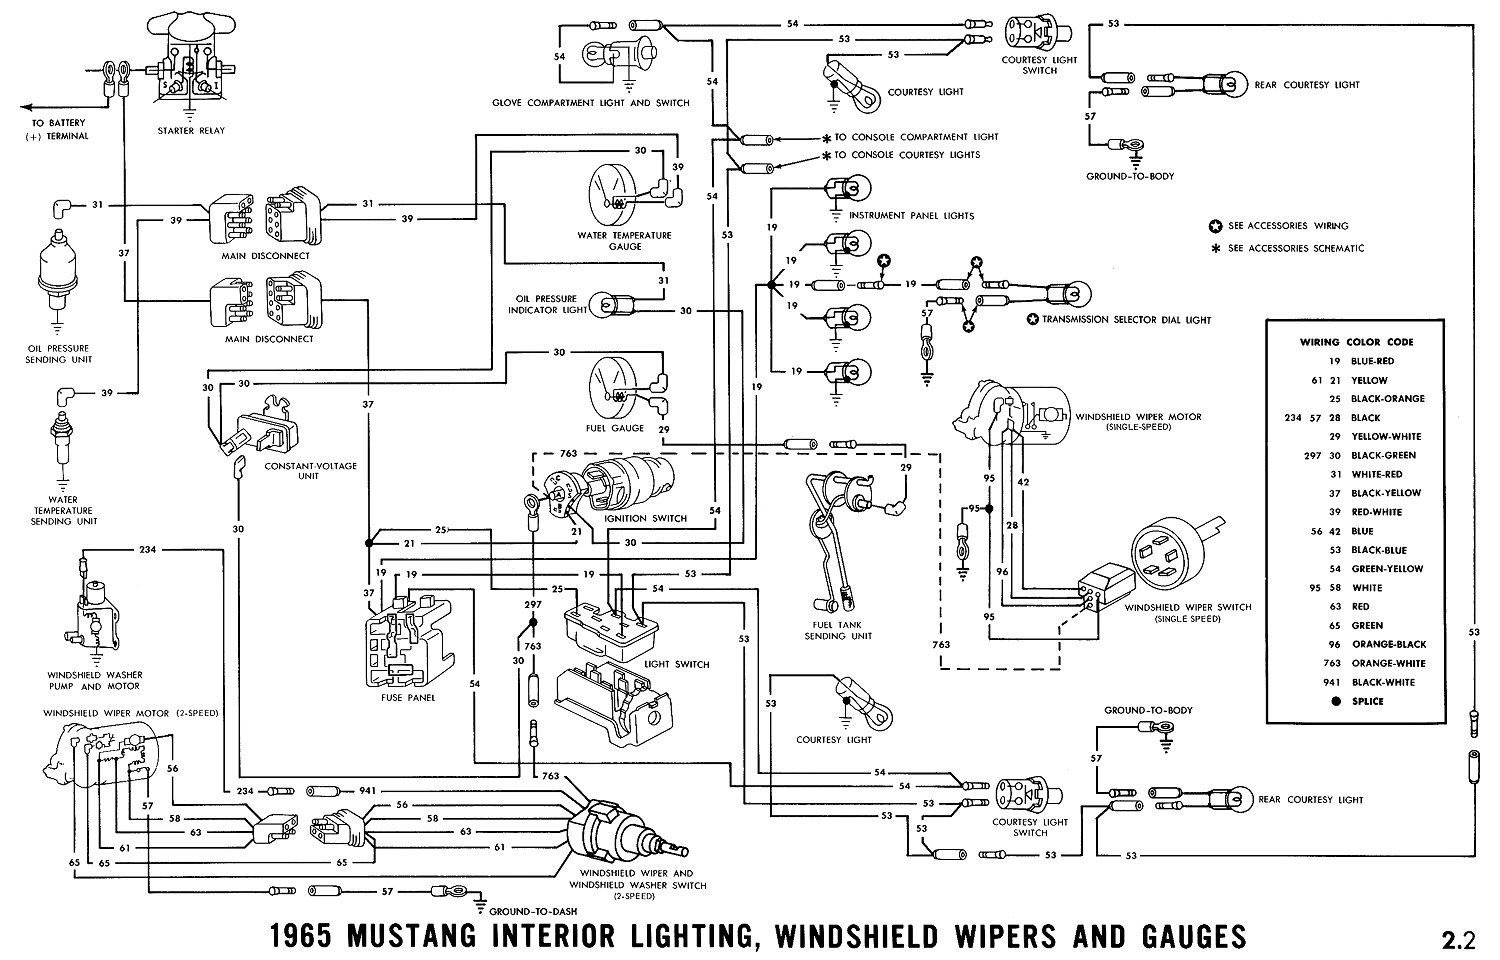 1965g 1970 mustang wiring diagram pdf 1967 mustang wiring diagram pdf 86 Mustang Wiring Diagram at panicattacktreatment.co